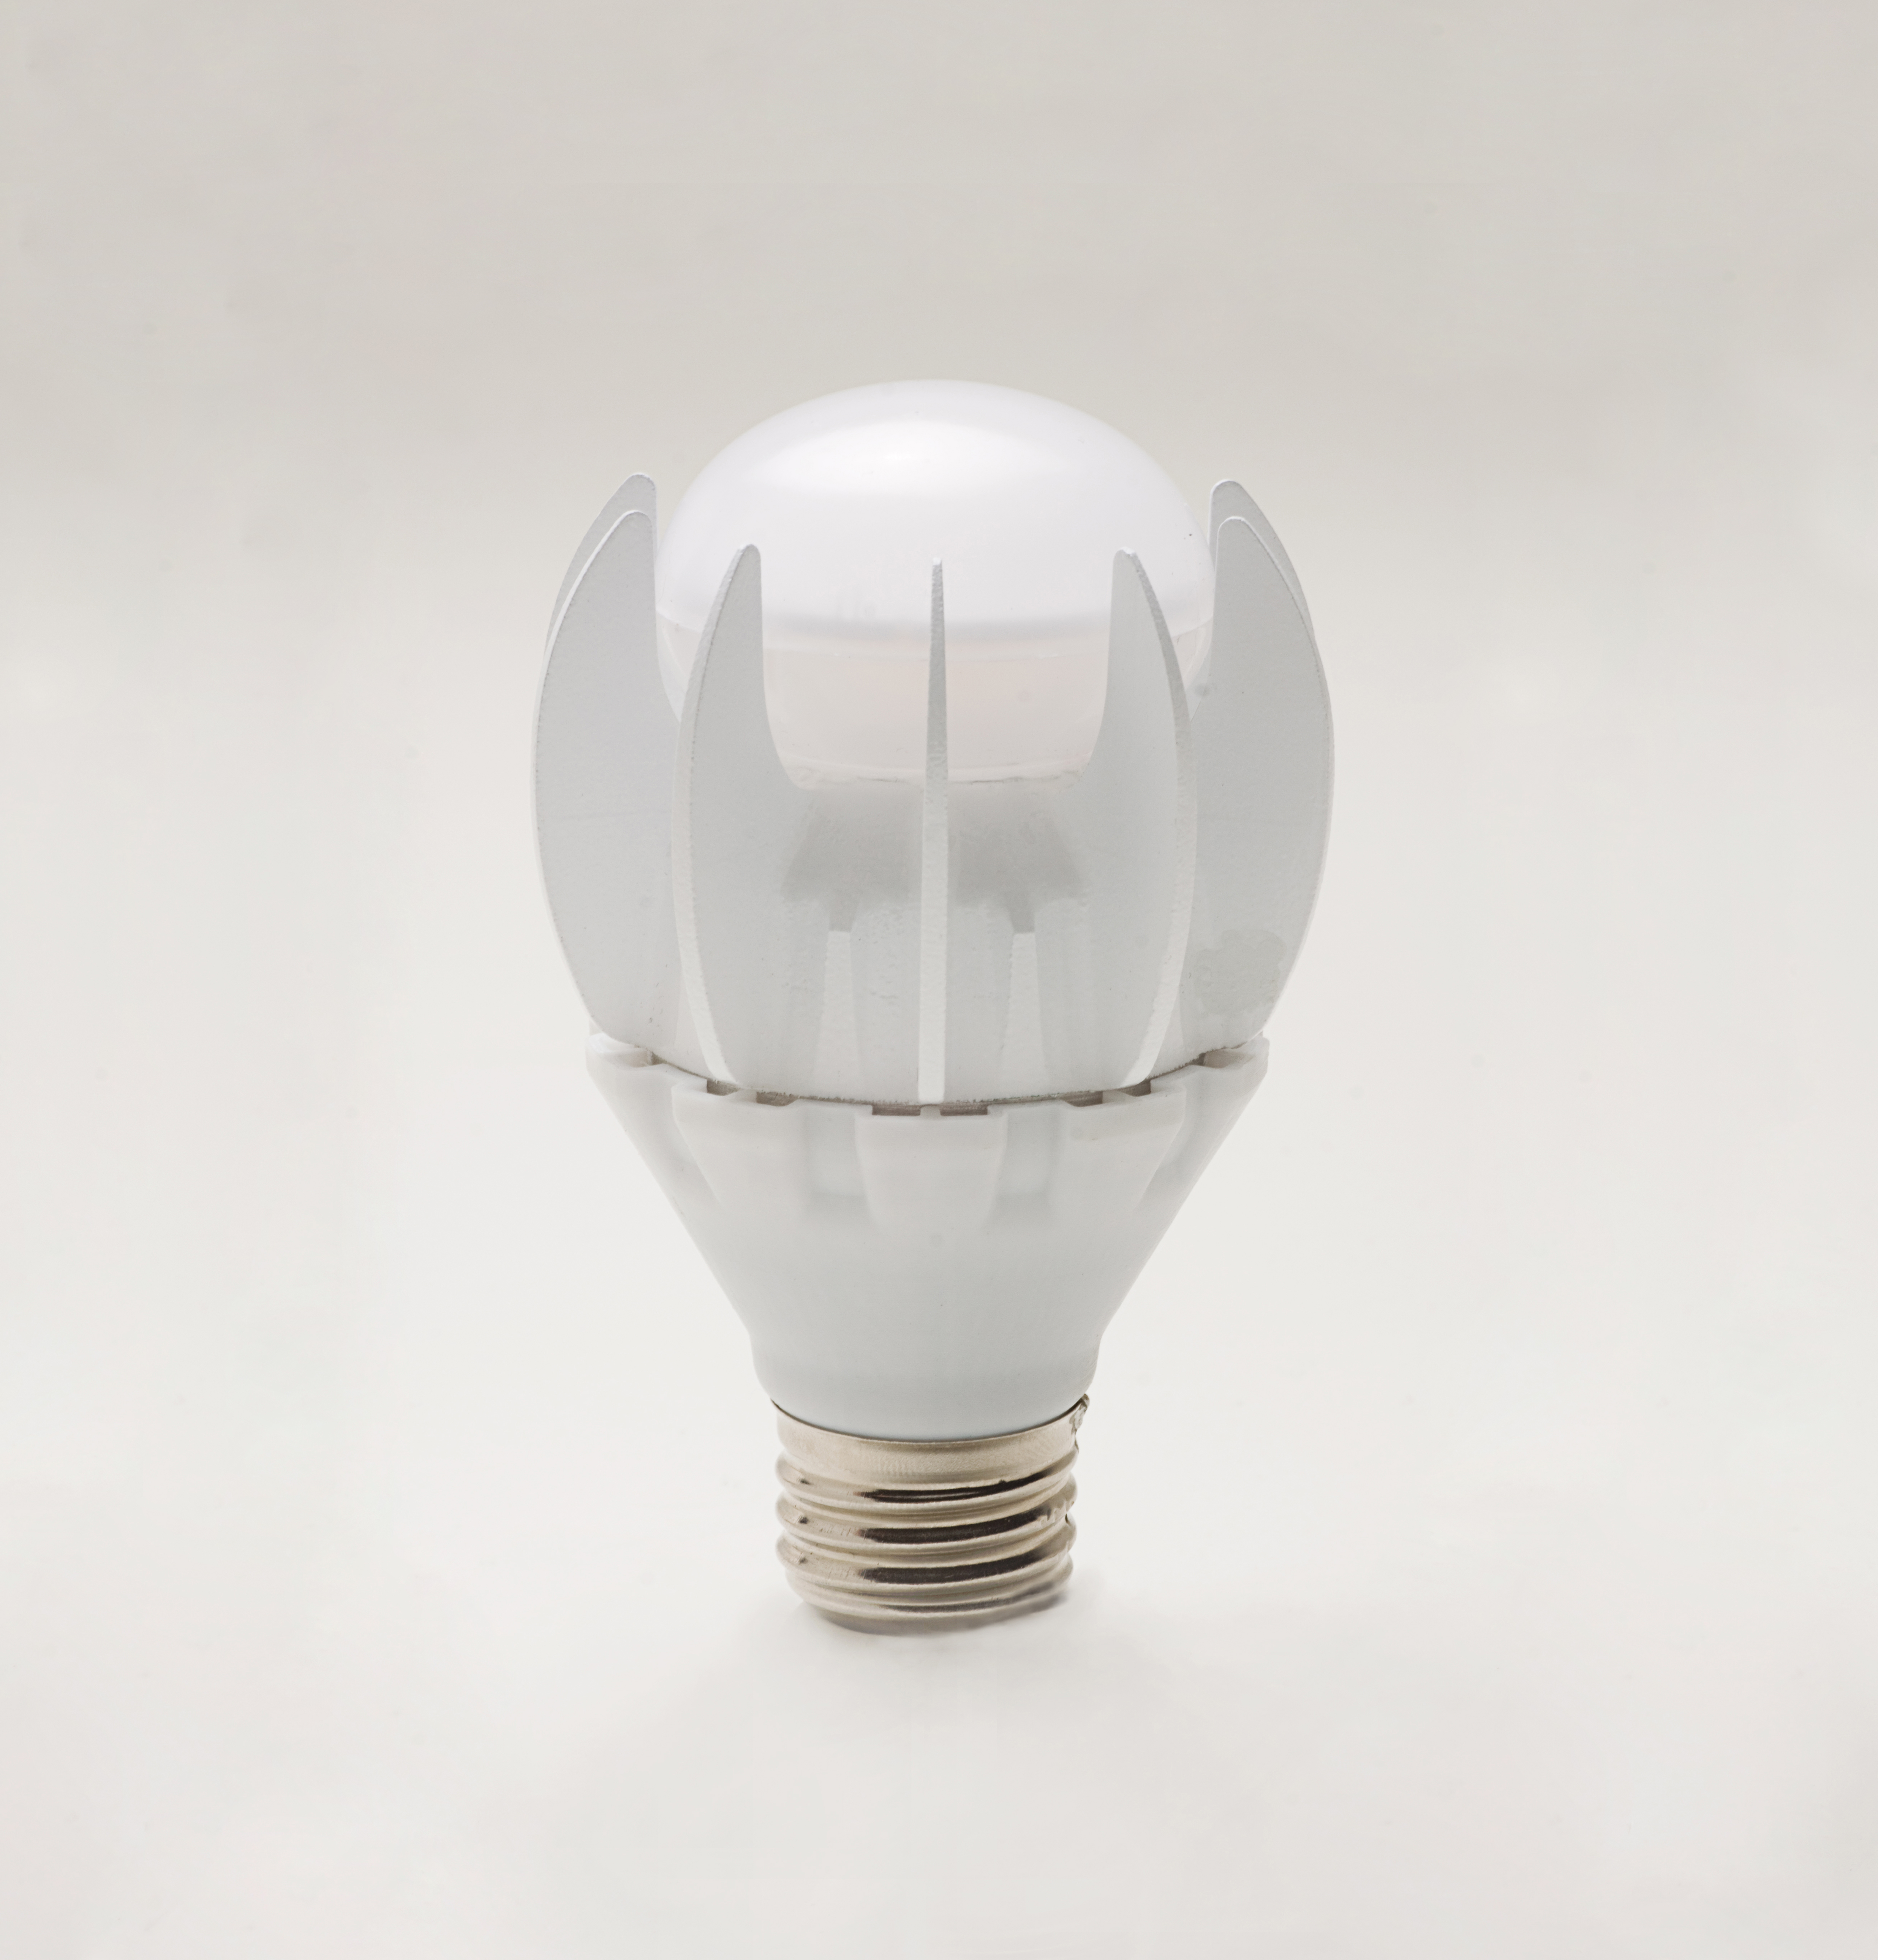 28 Led Light Bulb 100 Watt The First 100 Watt Led Bulb Ener Led A Shape Philips 3 Way Led Bulb